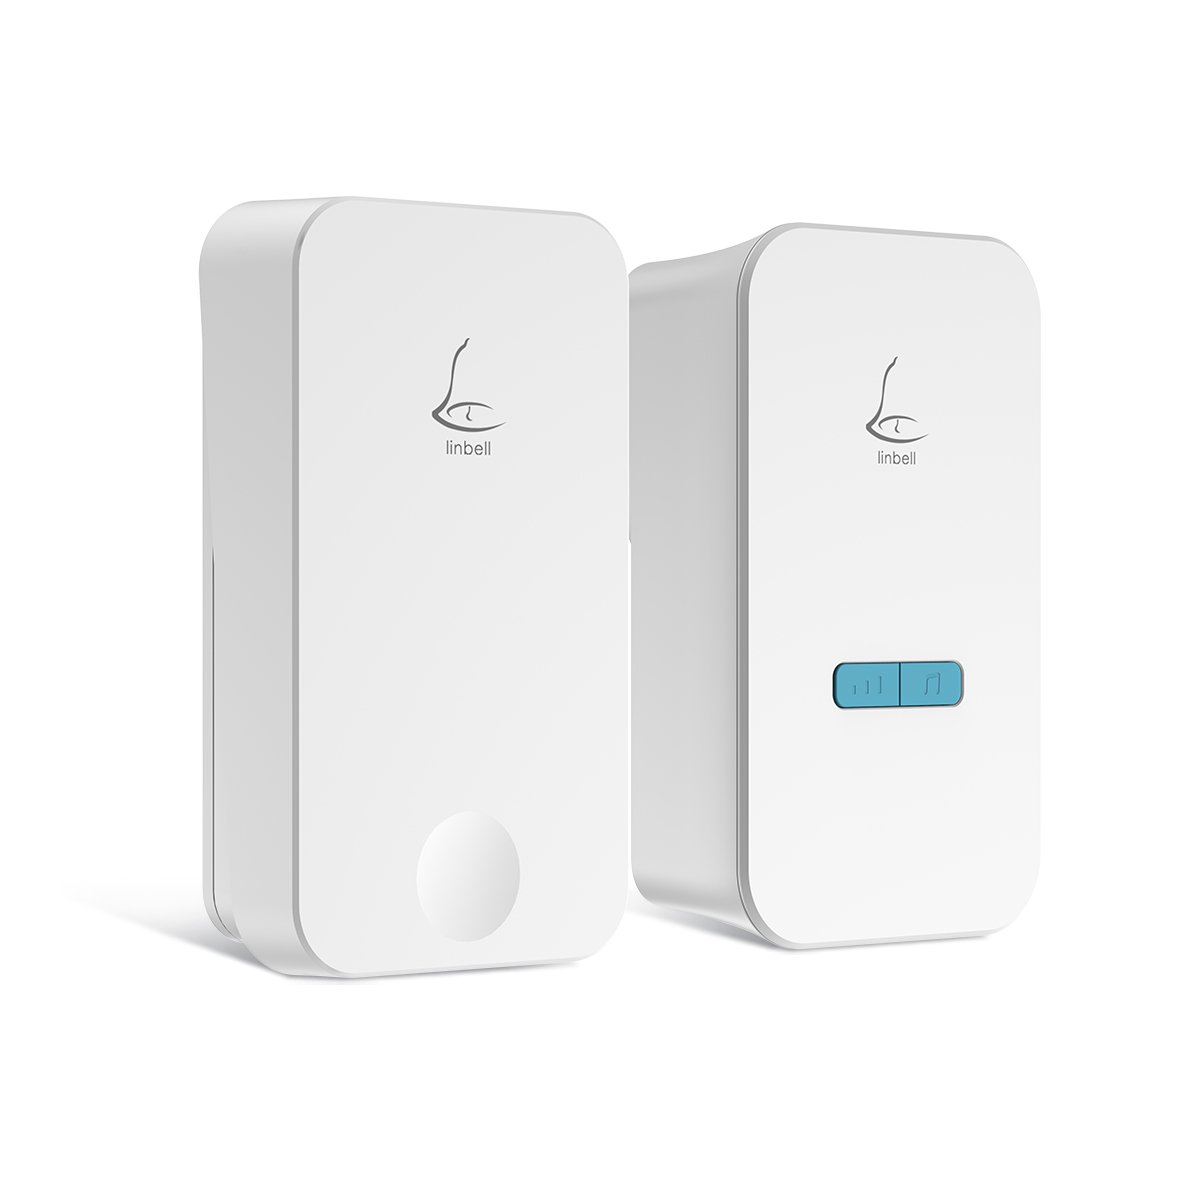 Linbell Self Powered Wireless Doorbell, No Batteries Required for Remote Button and Receiver,1 Remote Button and 1 Plug in Receiver with 36 Chimes, 5 Volume Levels and LED Indicator, (White)